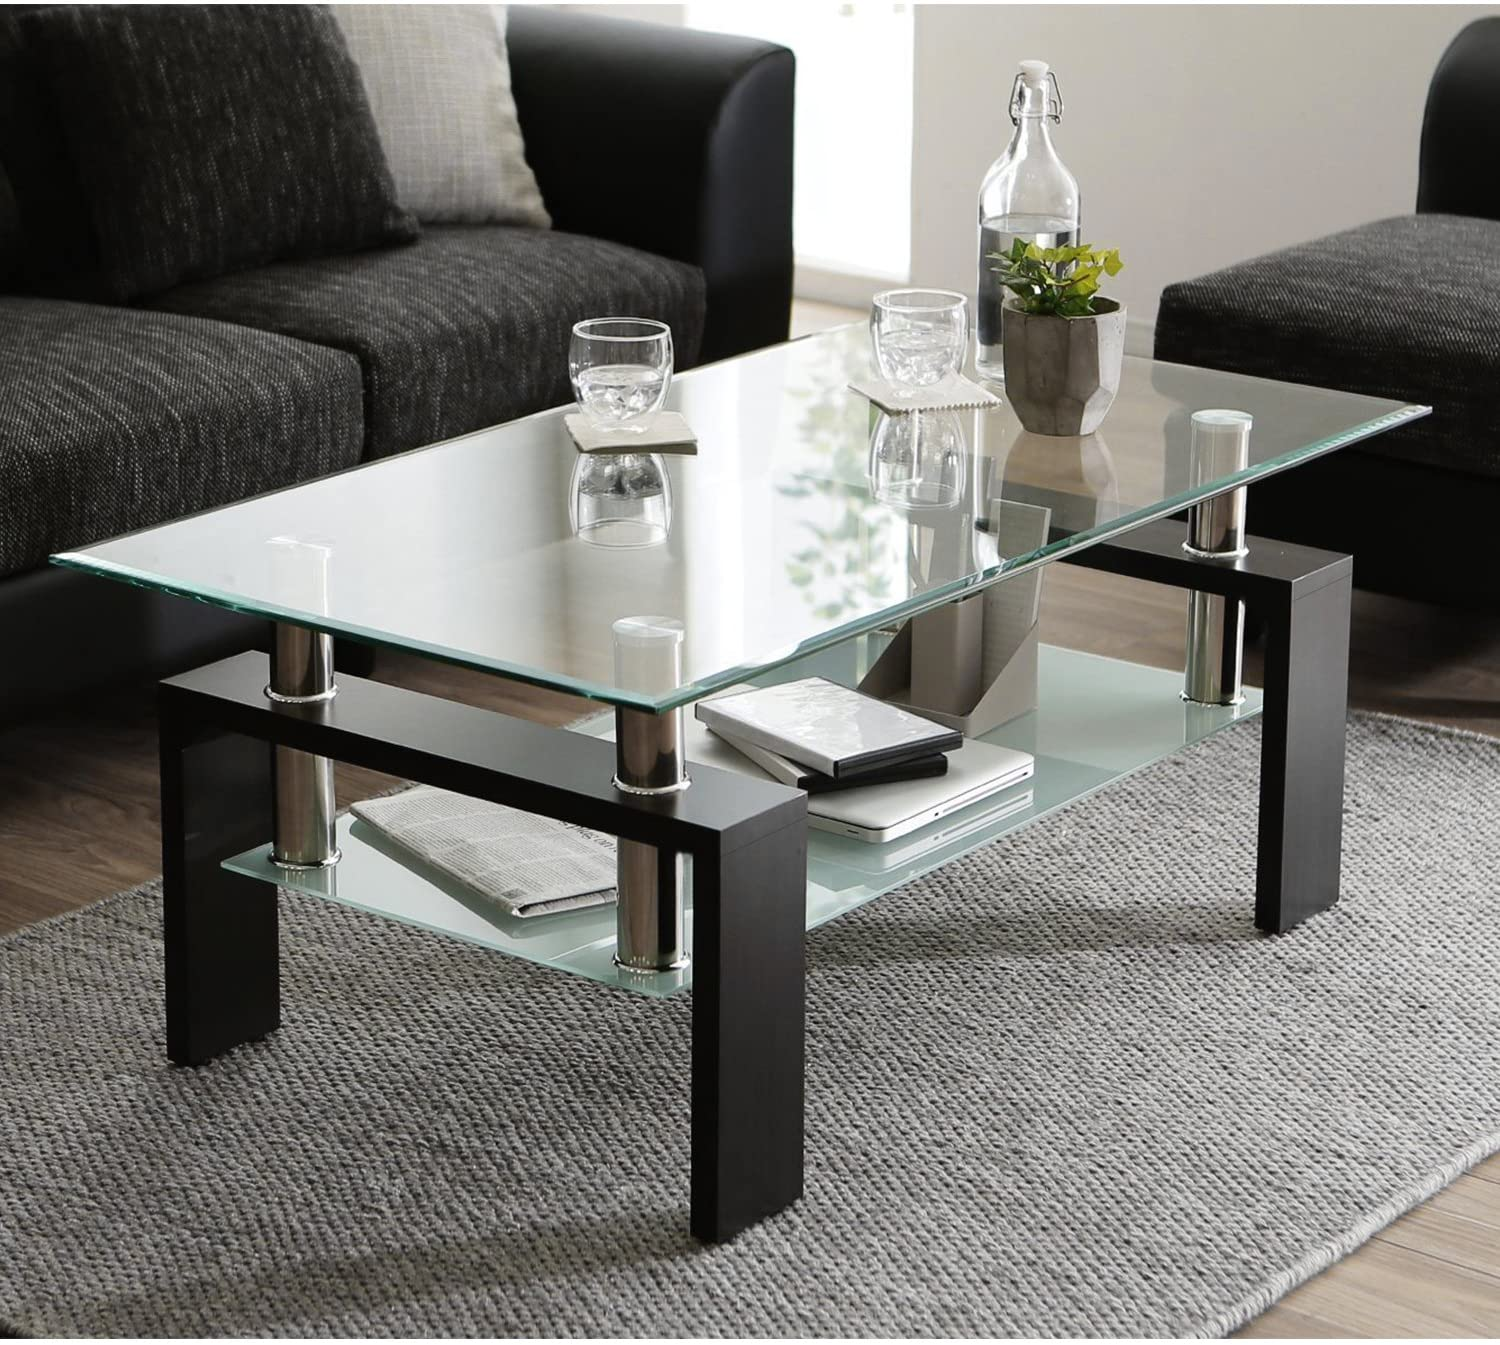 glass coffee table with lower shelf clear rectangle glass coffee table modern coffee table with metal legs rectangle center table sofa table home